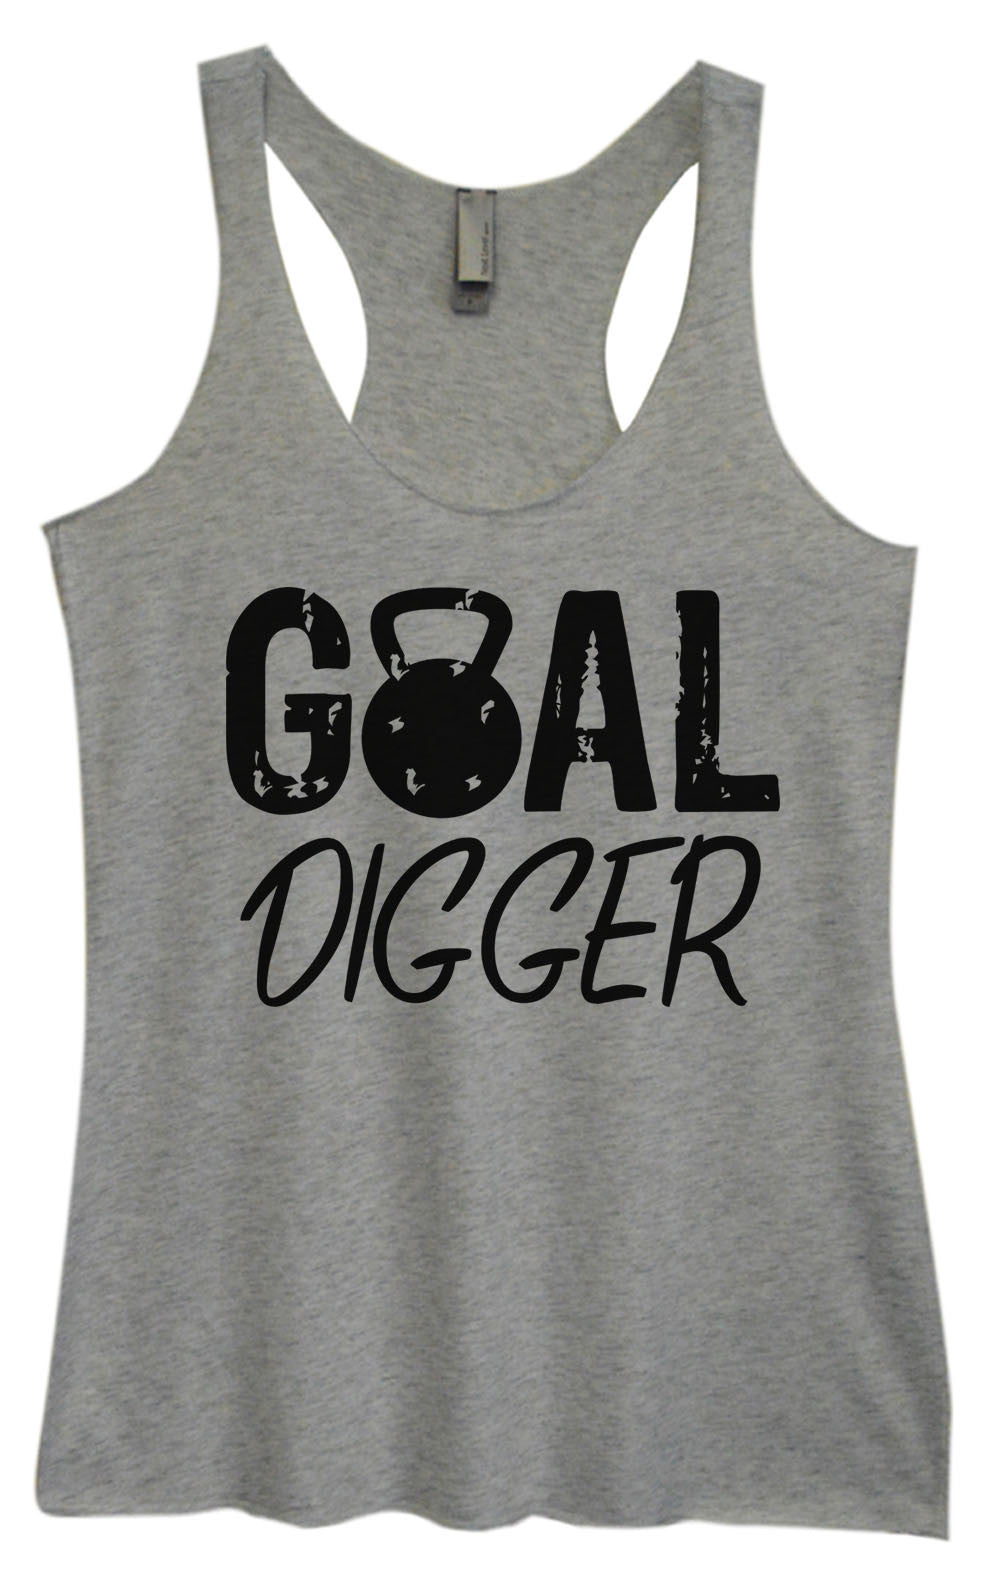 Womens Fashion Triblend Tank Top - Goal Digger - Tri-959 - Funny Shirts Tank Tops Burnouts and Triblends  - 1